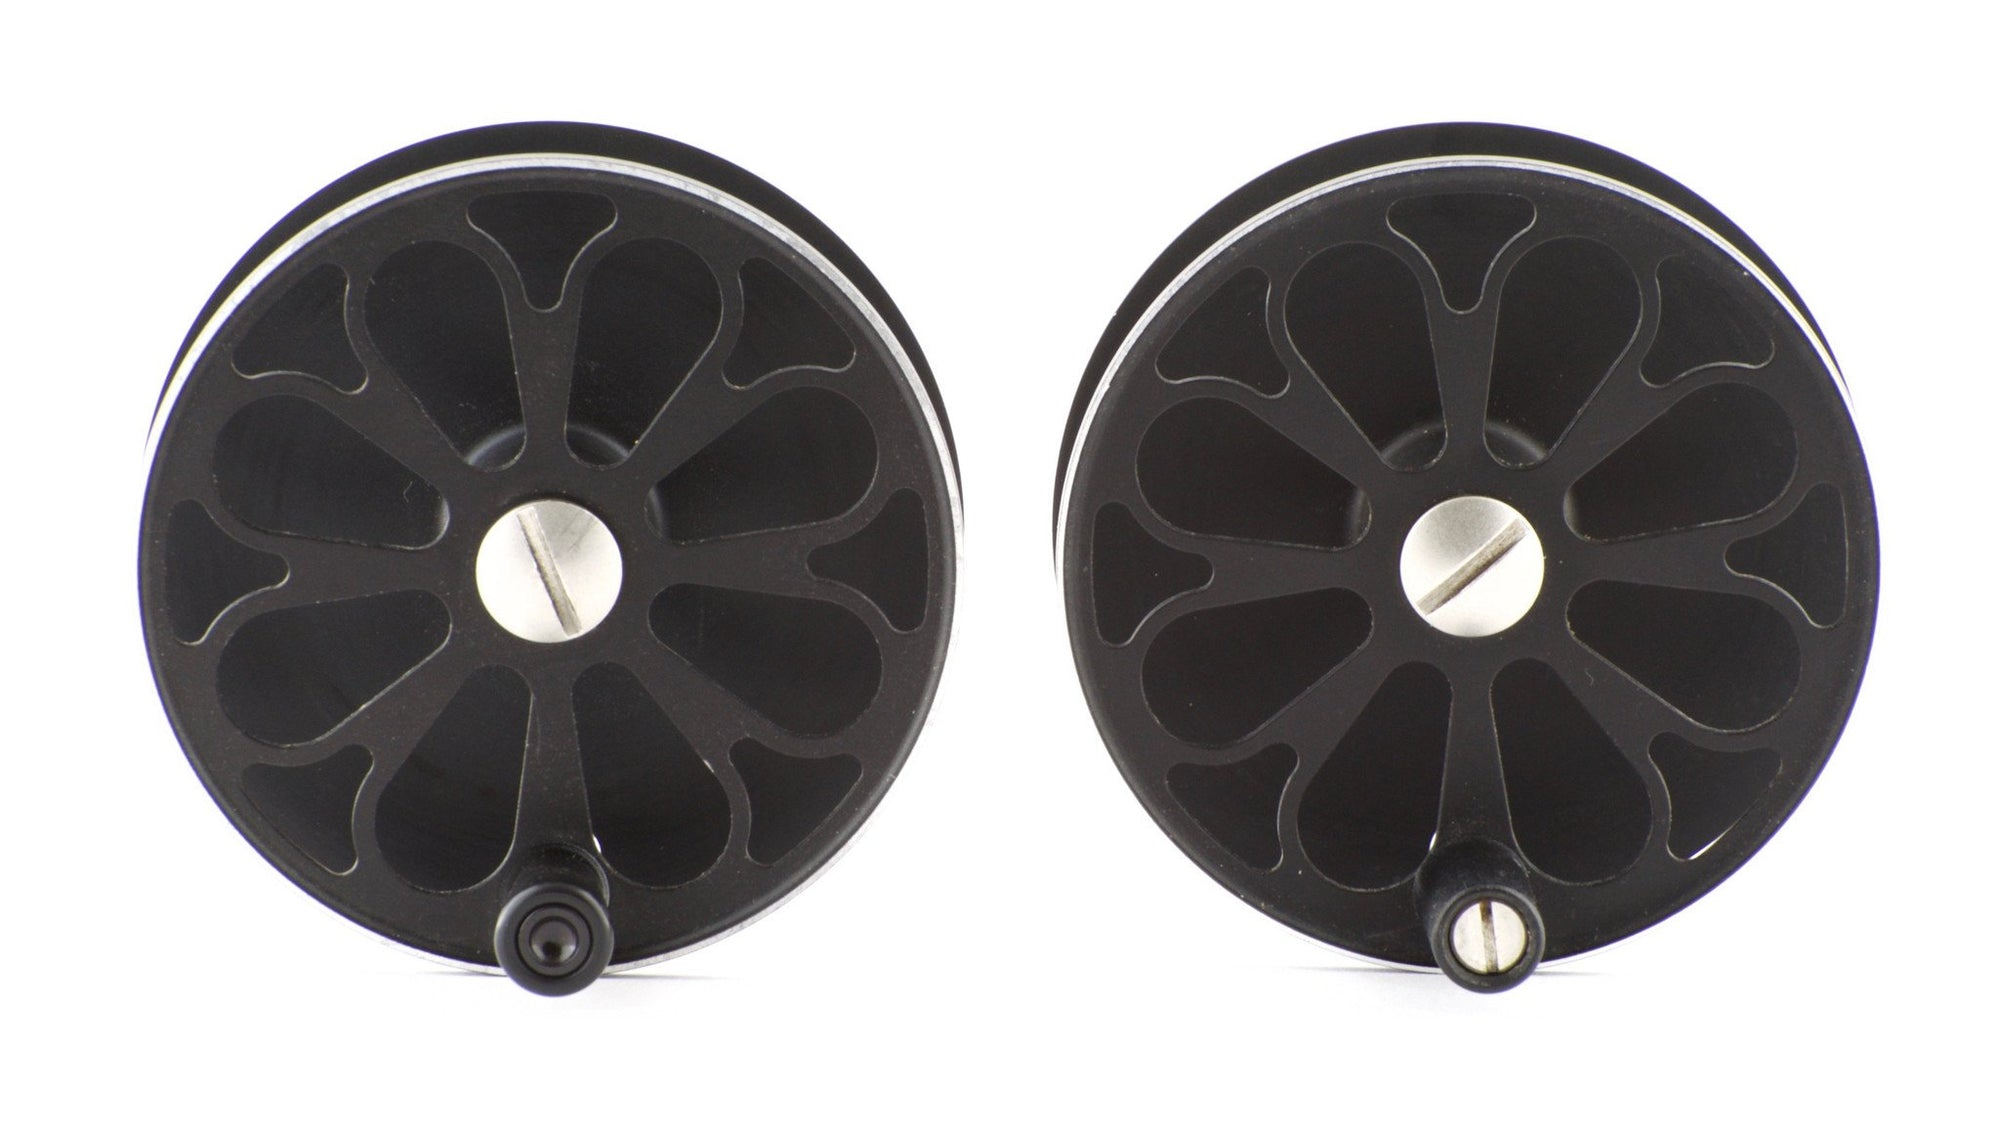 Ross RR2 - two spare spools